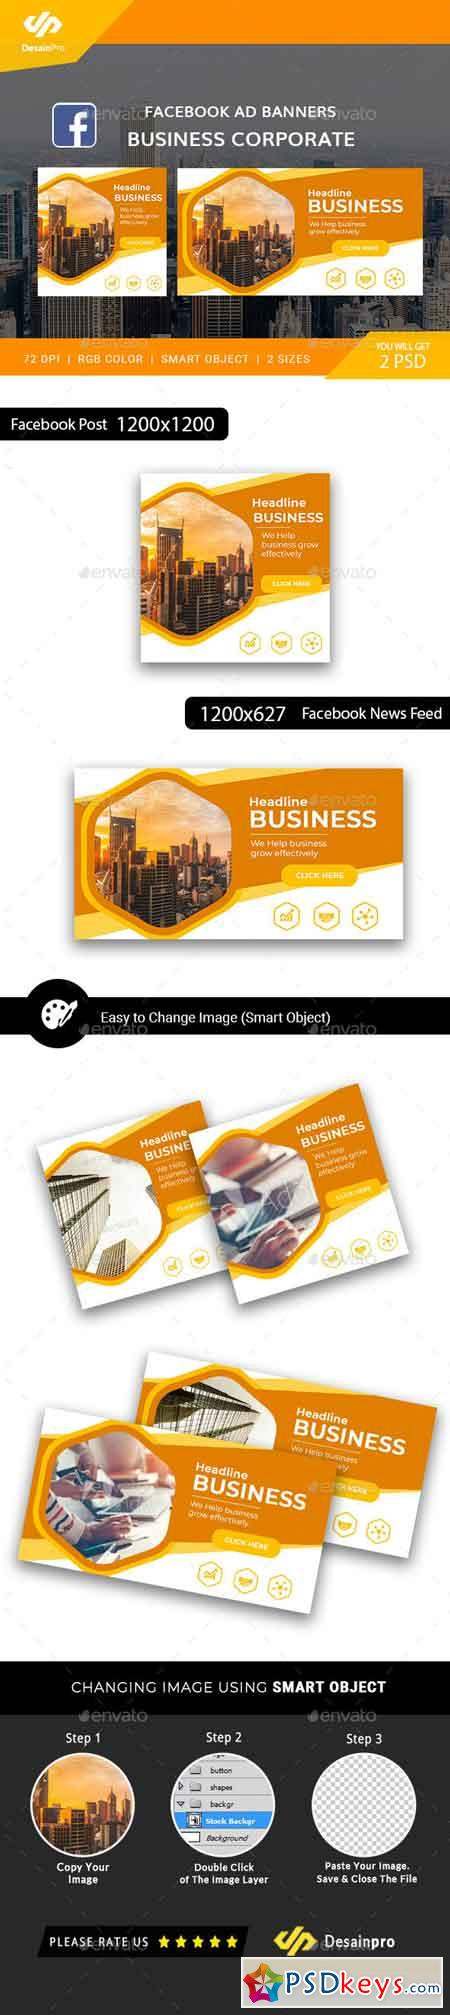 Business Corporate Facebook Ad Banners - AR 21892758